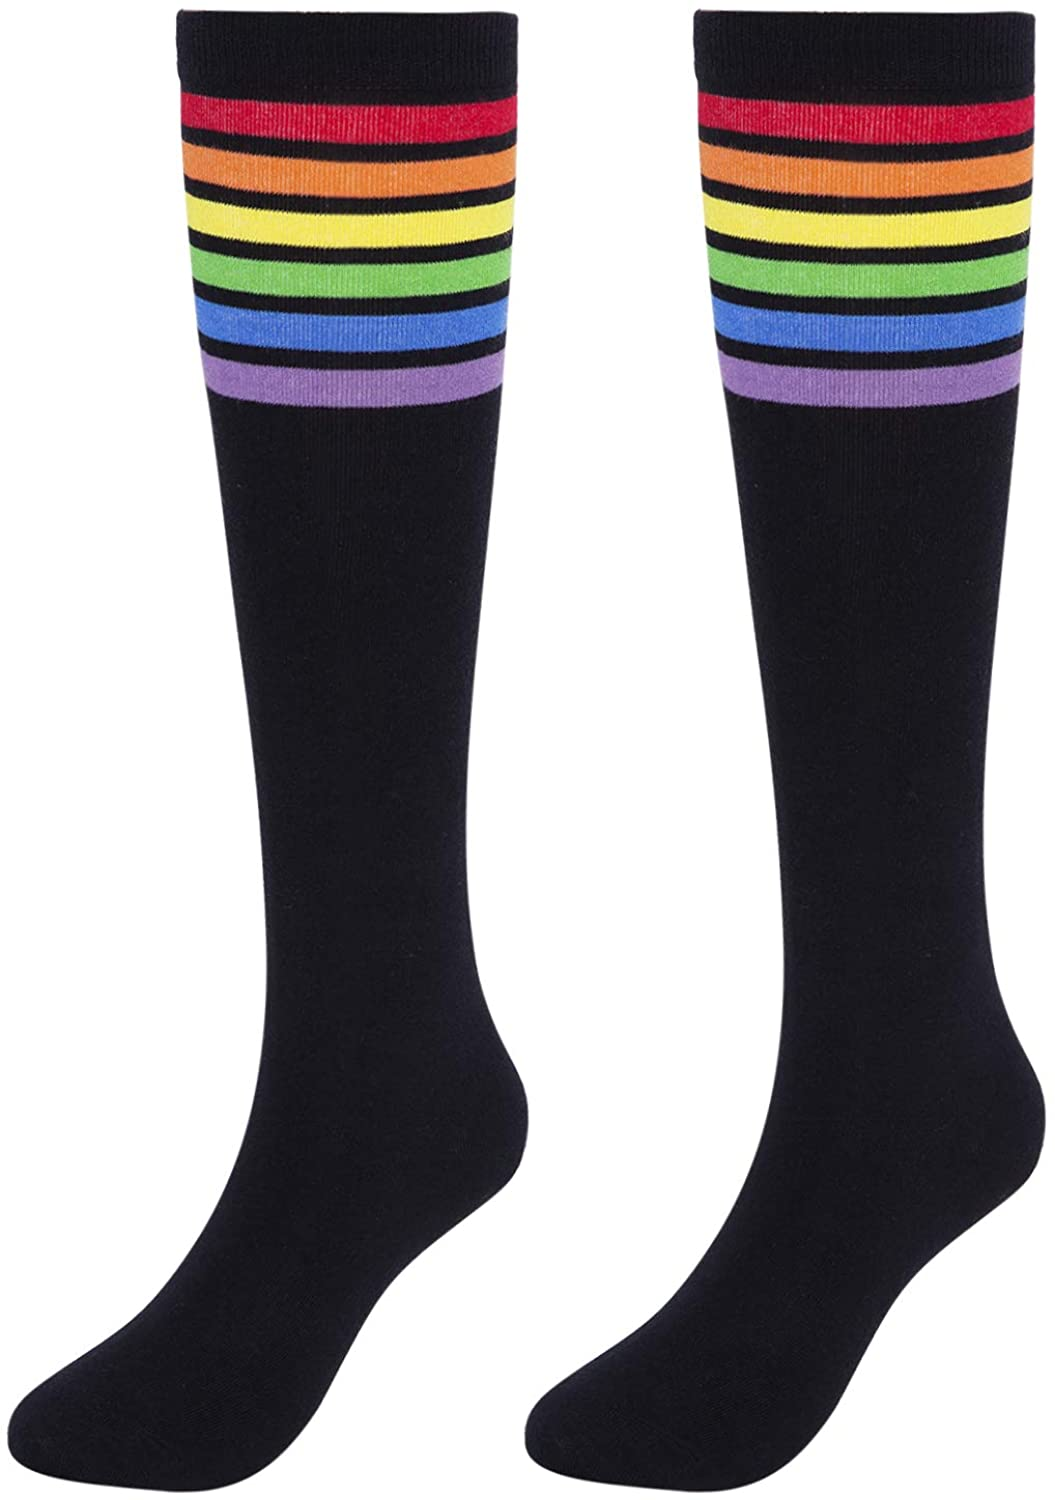 KONY Womens Cotton Colorful Striped Rainbow Knee High Socks 1/3 Pairs, Comfortable Stay Up Best Gift Size 6-10